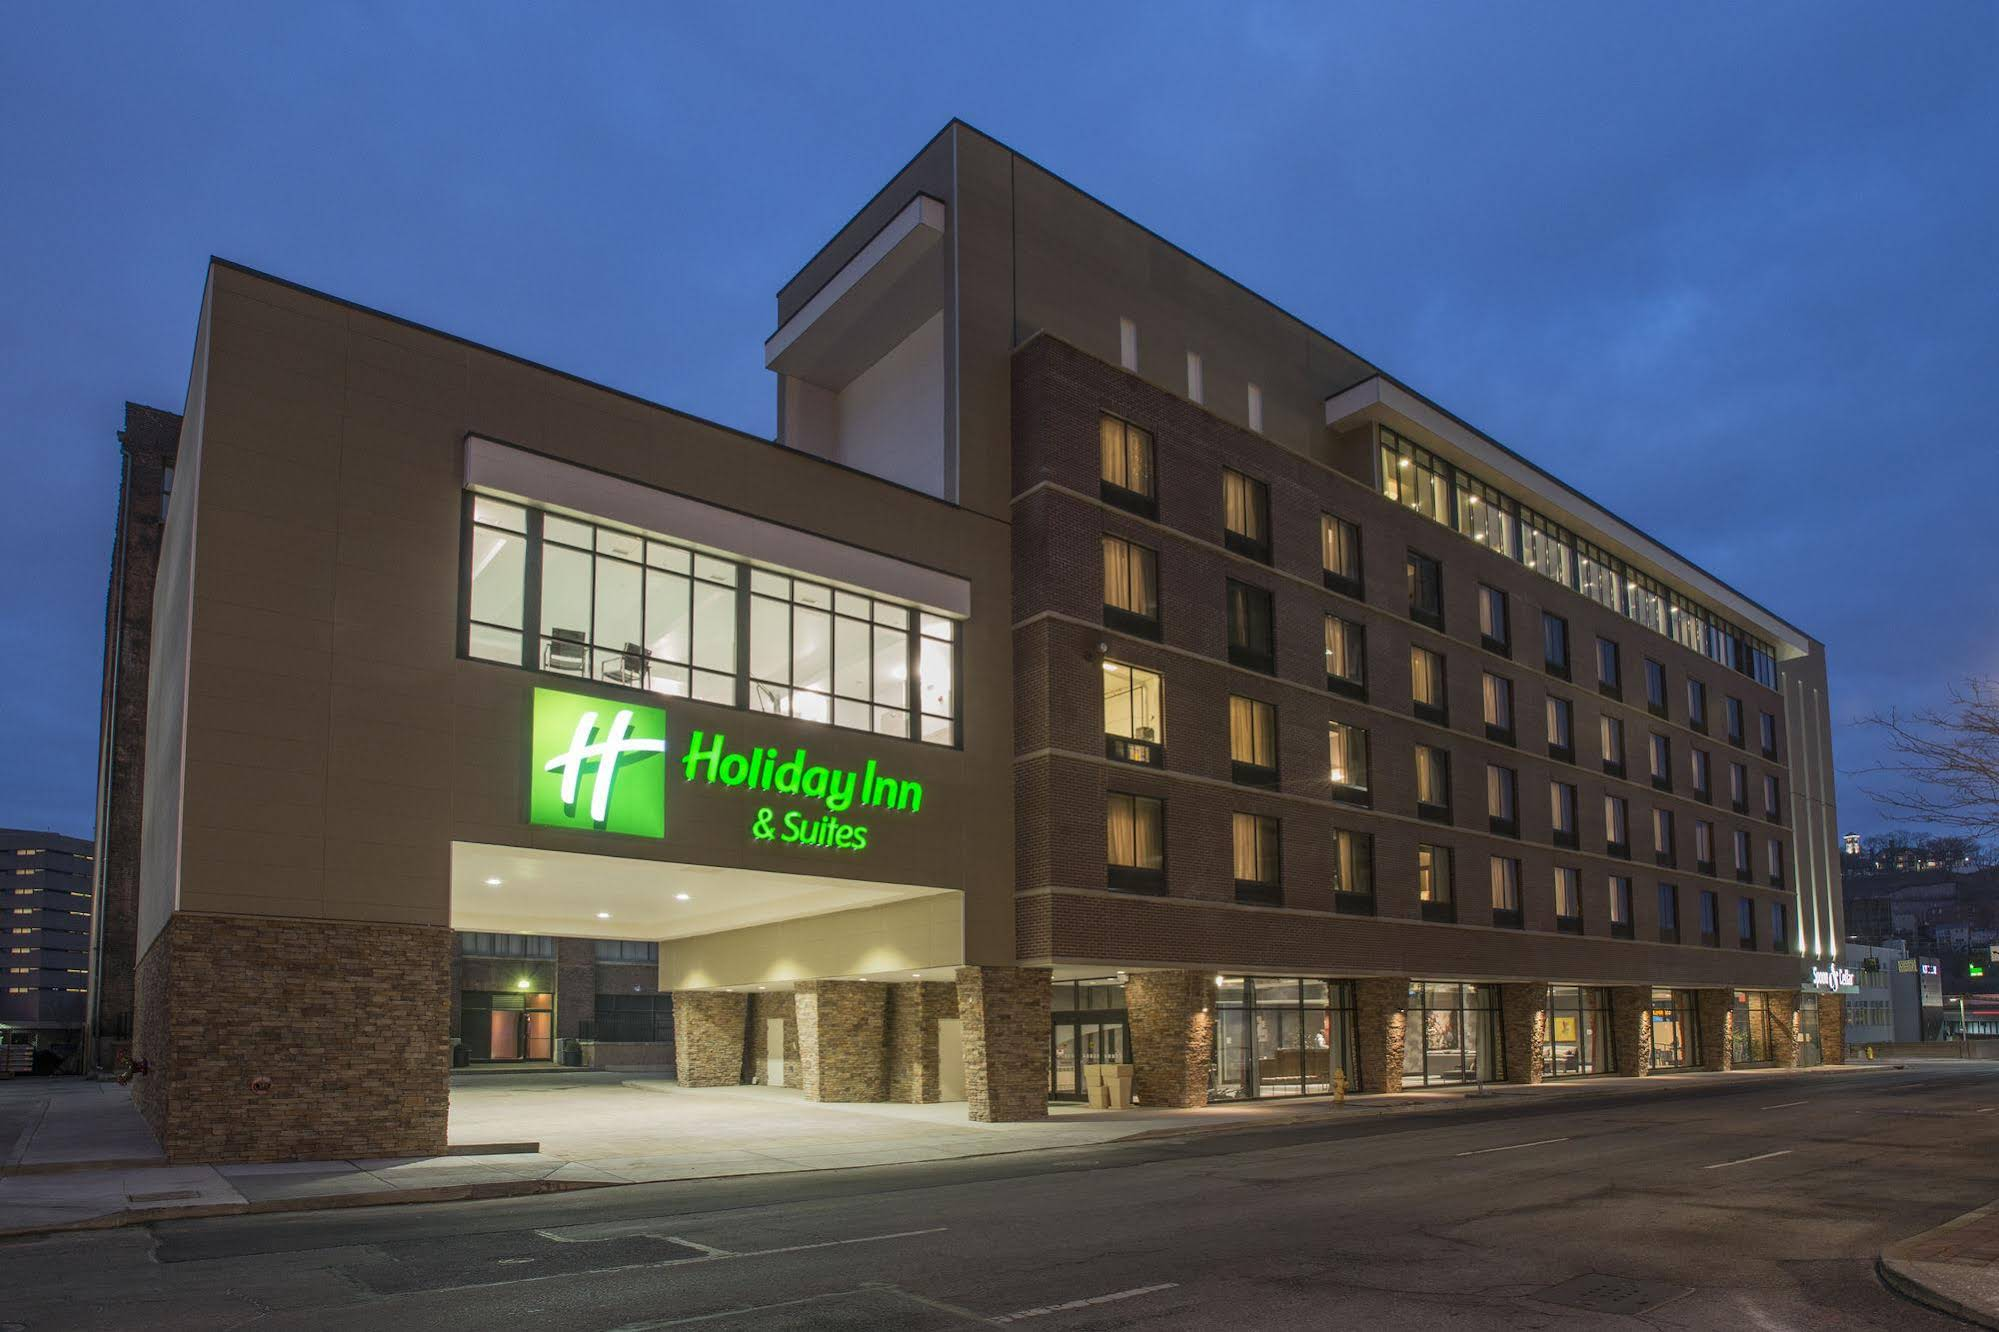 Holiday Inn and Suites Cincinnati Downtown